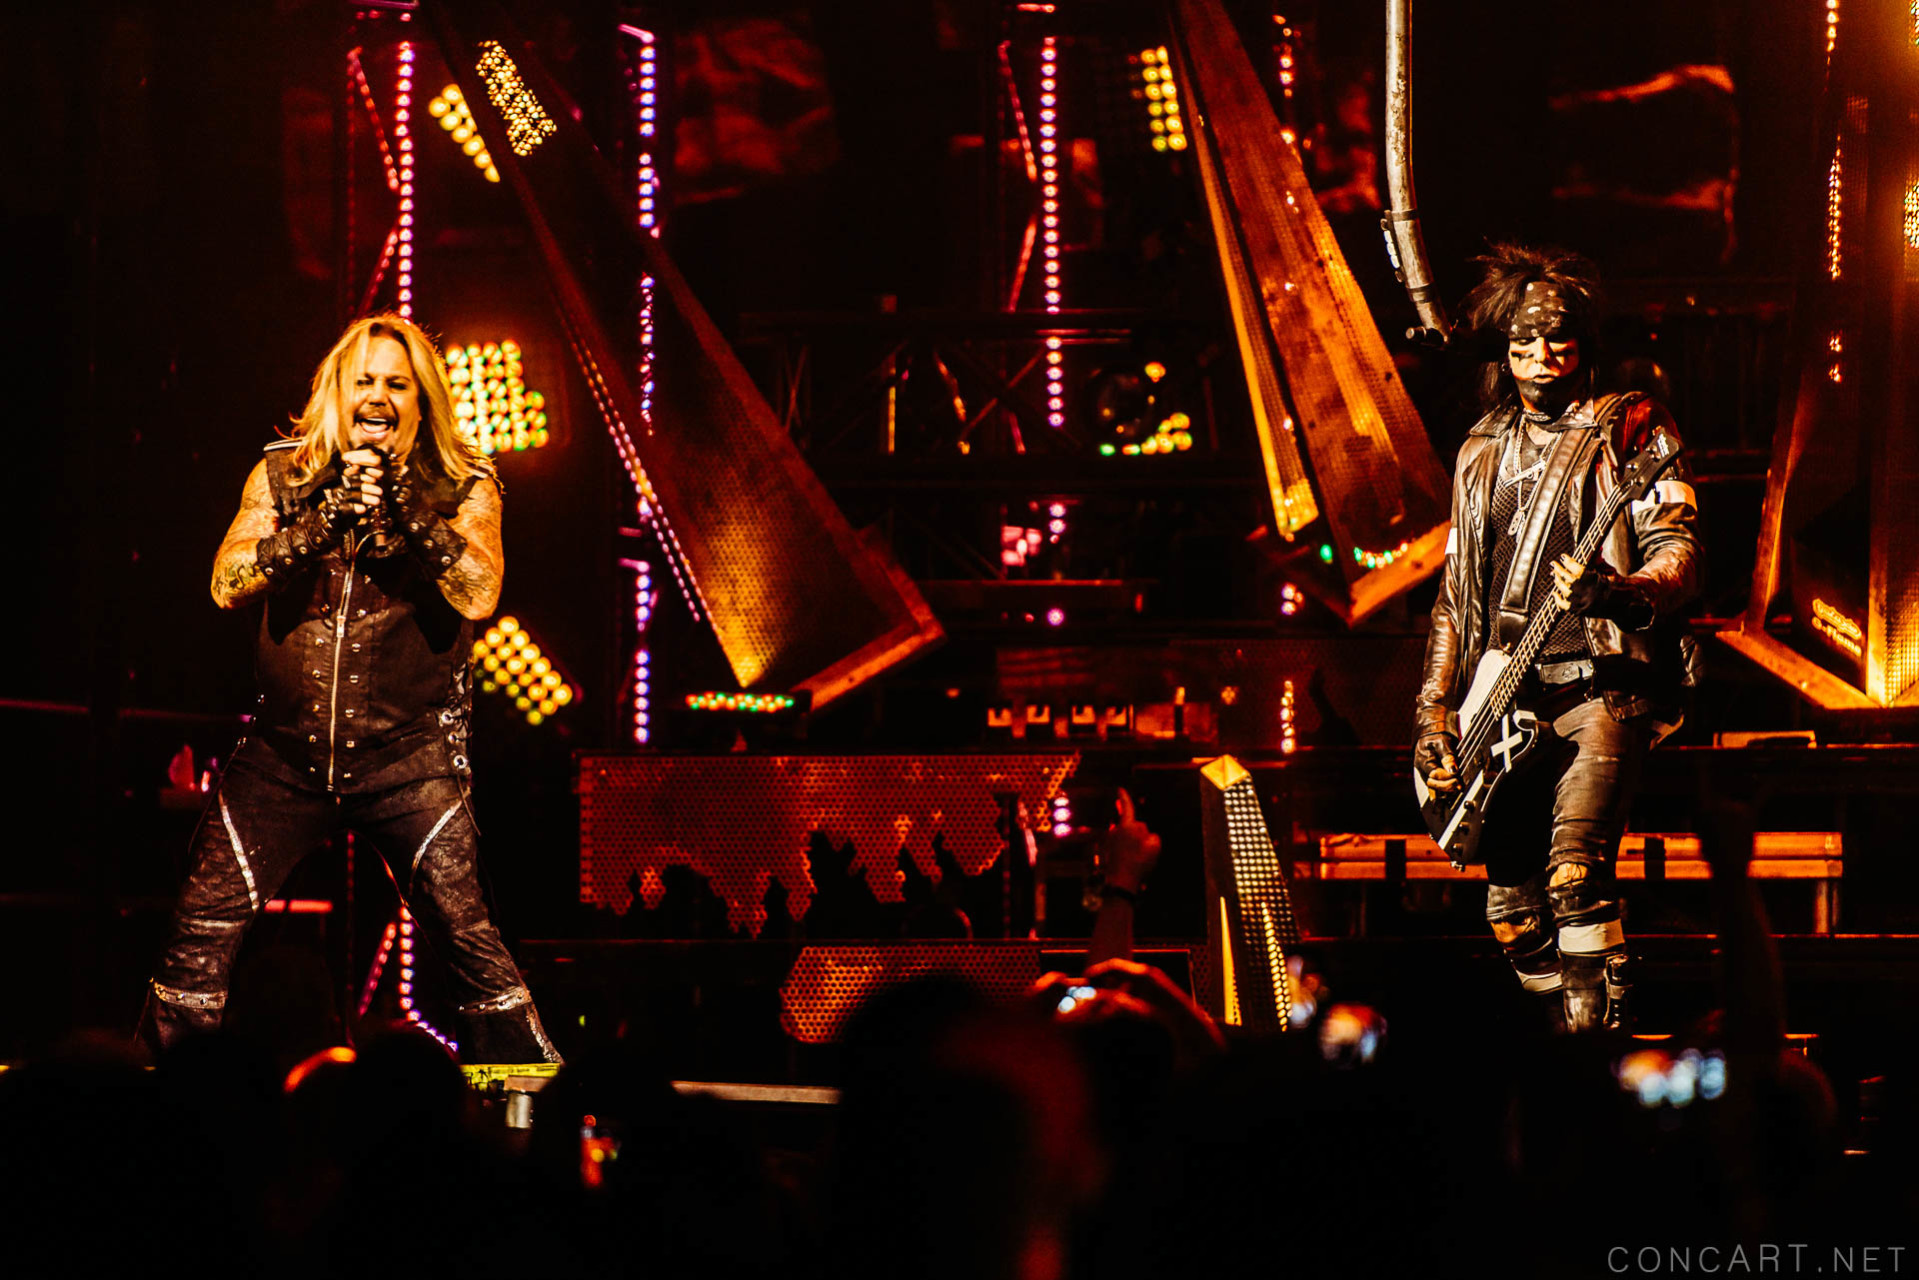 Mötley Crüe photo by Sean Molin 36